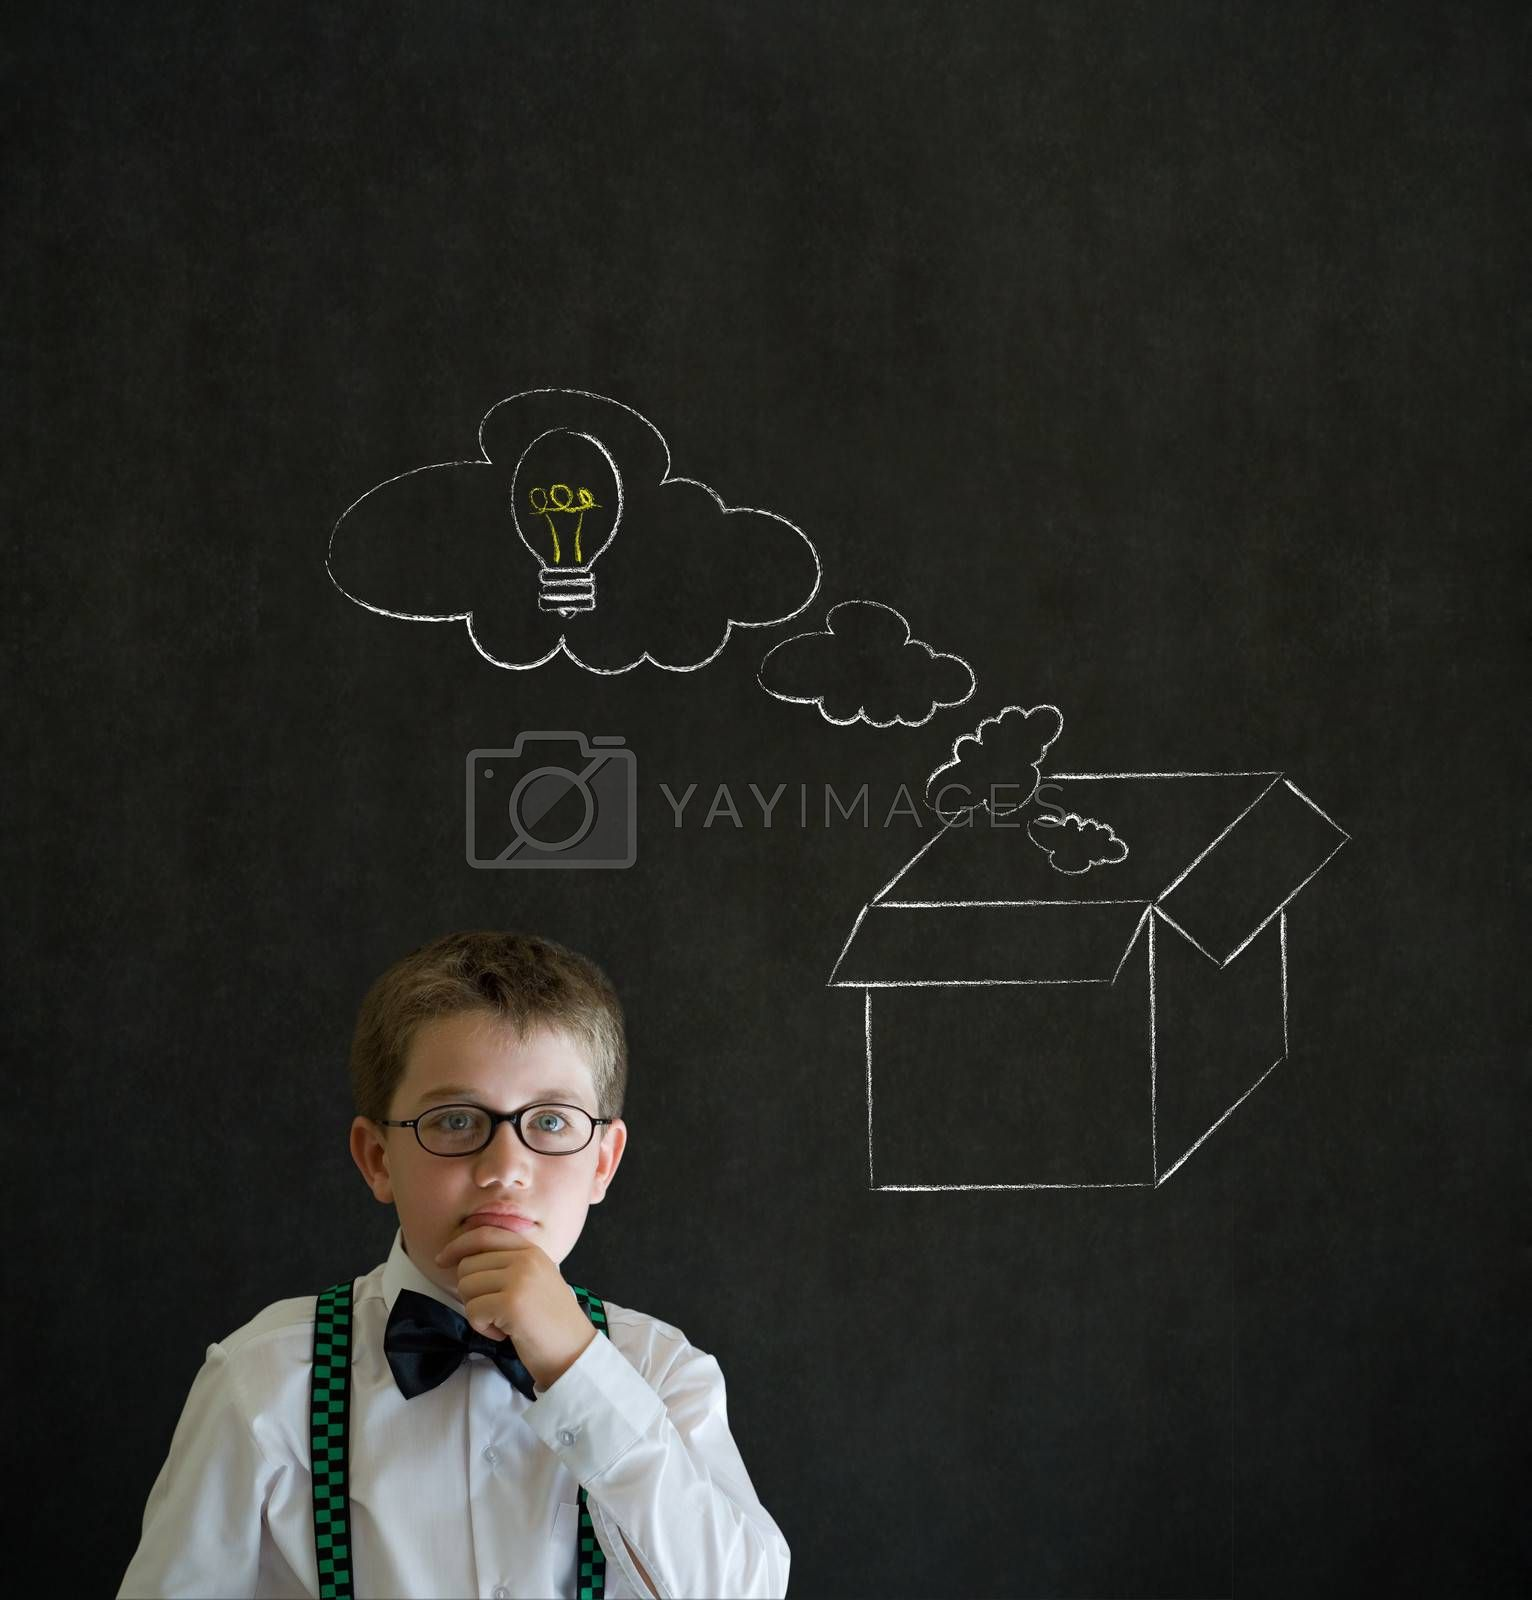 Royalty free image of Thinking boy business man with thinking out the box concept by alistaircotton